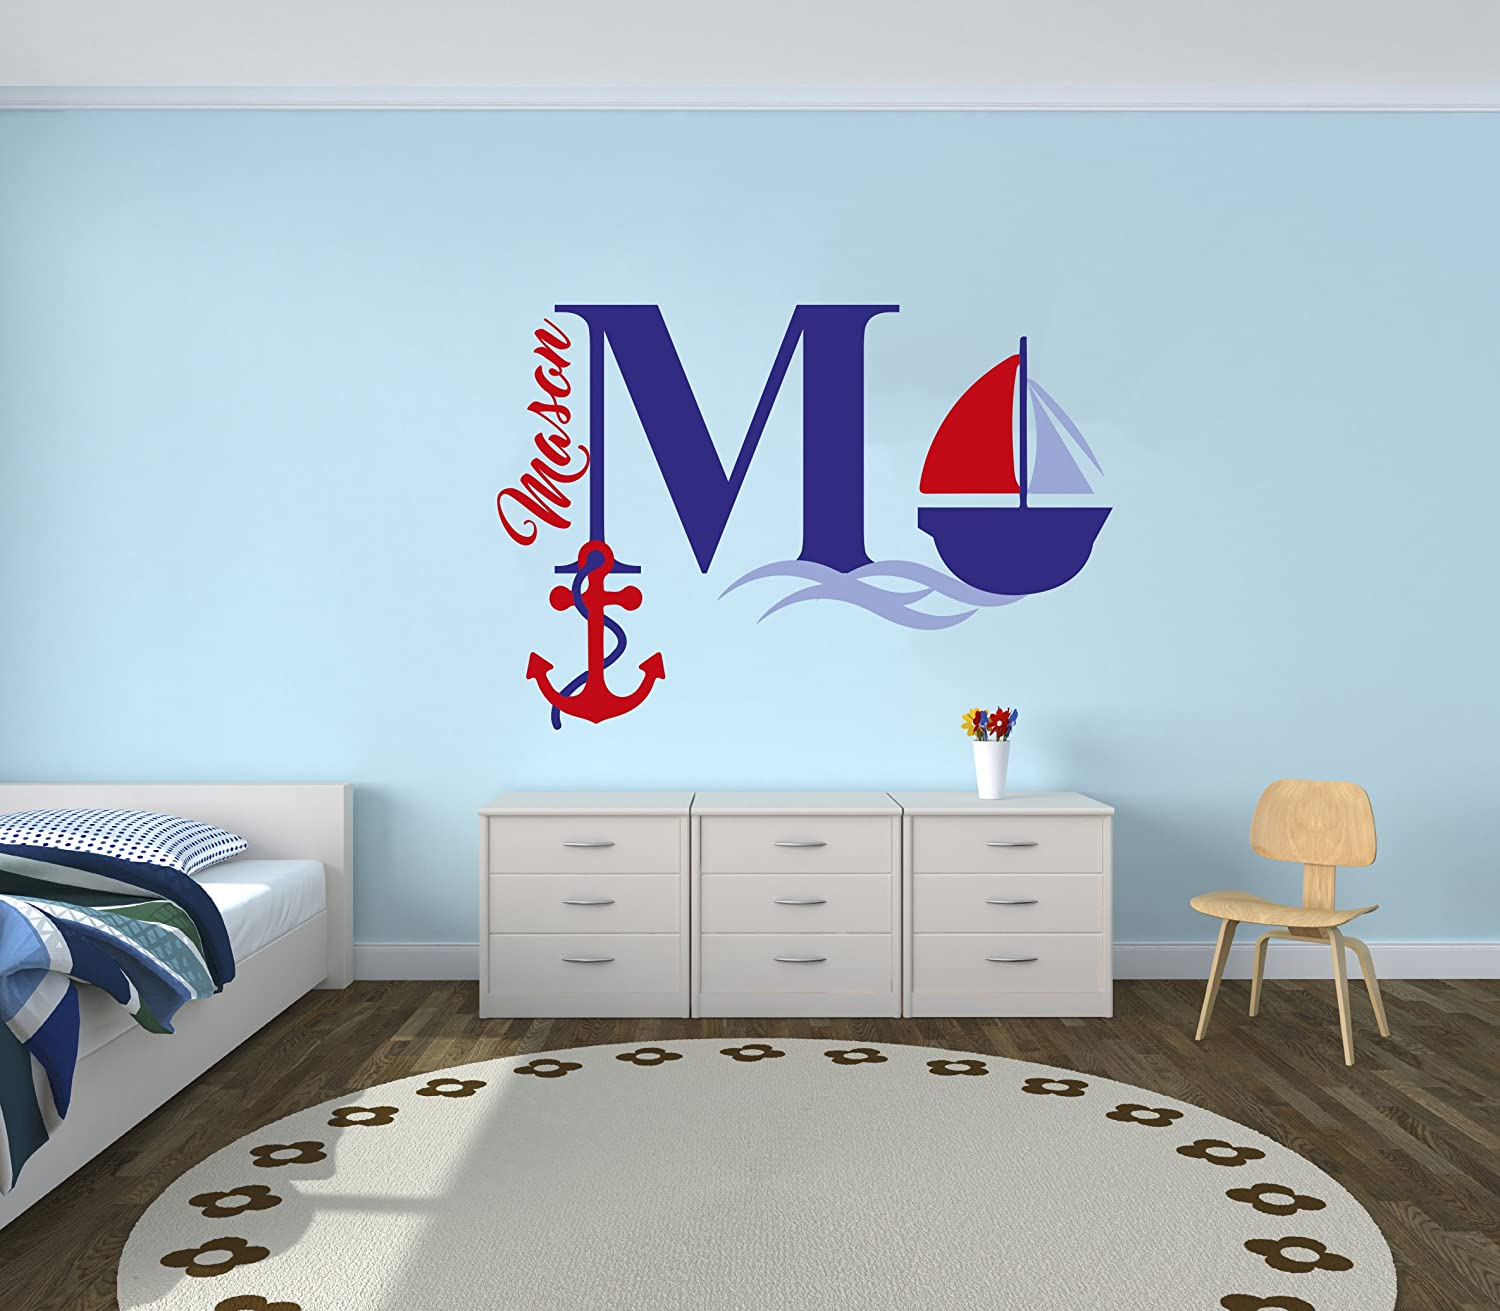 Nautical Decor For Baby Boy Room  from images-na.ssl-images-amazon.com